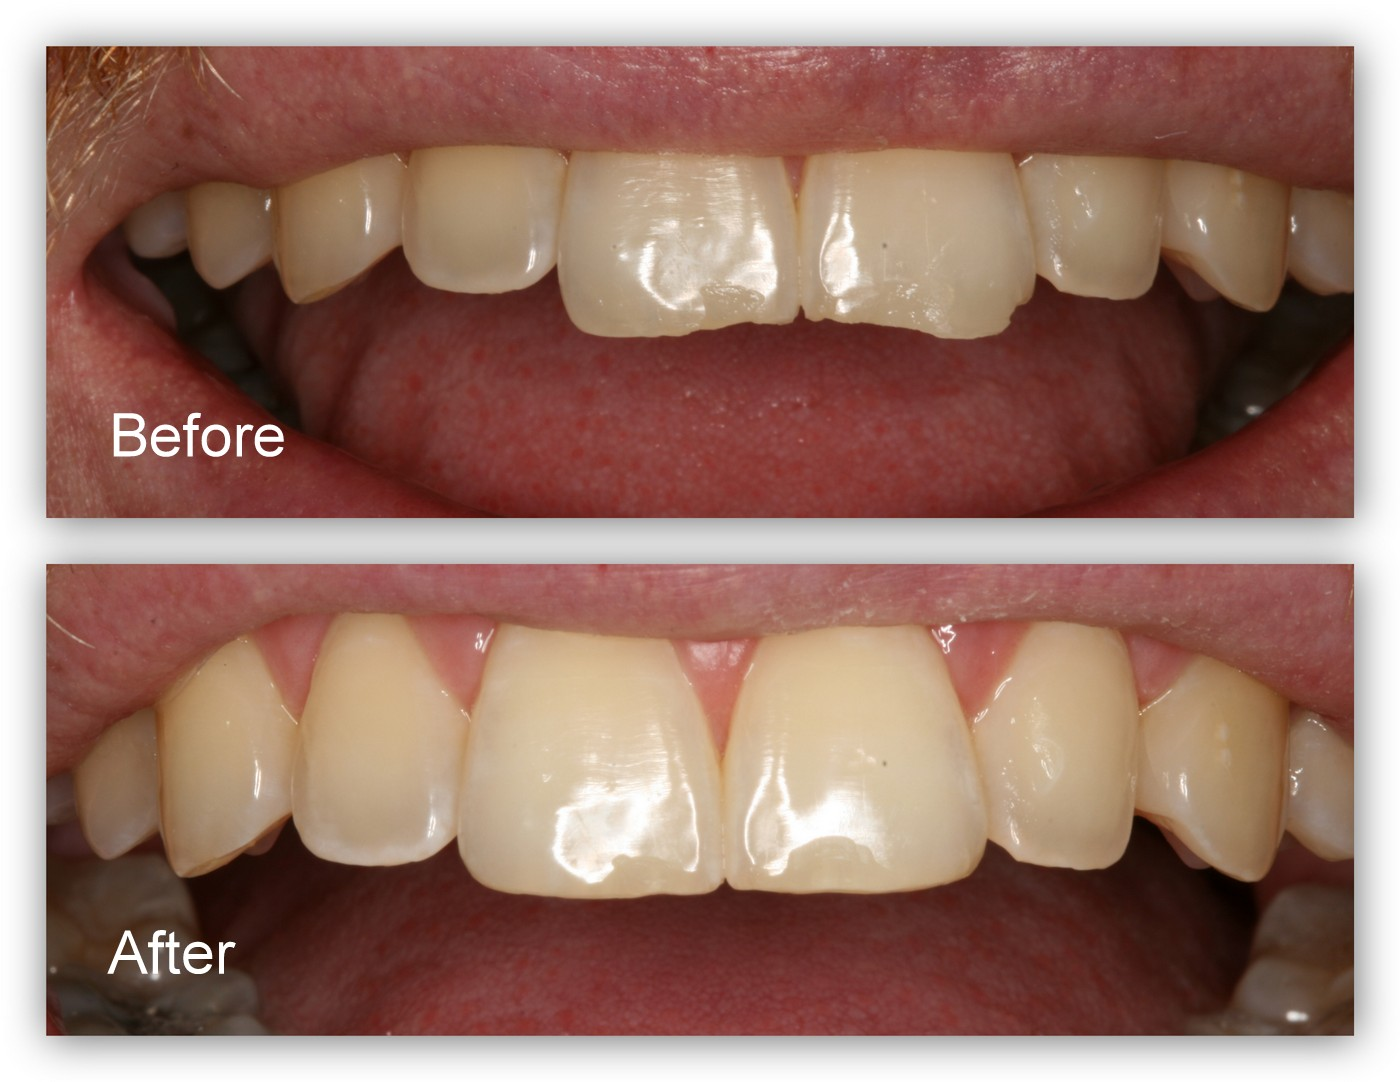 Before- This patient presented to Dr. Jack Hosner of Portage, MI with chipped and worn two front teeth. After- Dr. Hosner reshaped and polished the edges to create better esthetics.